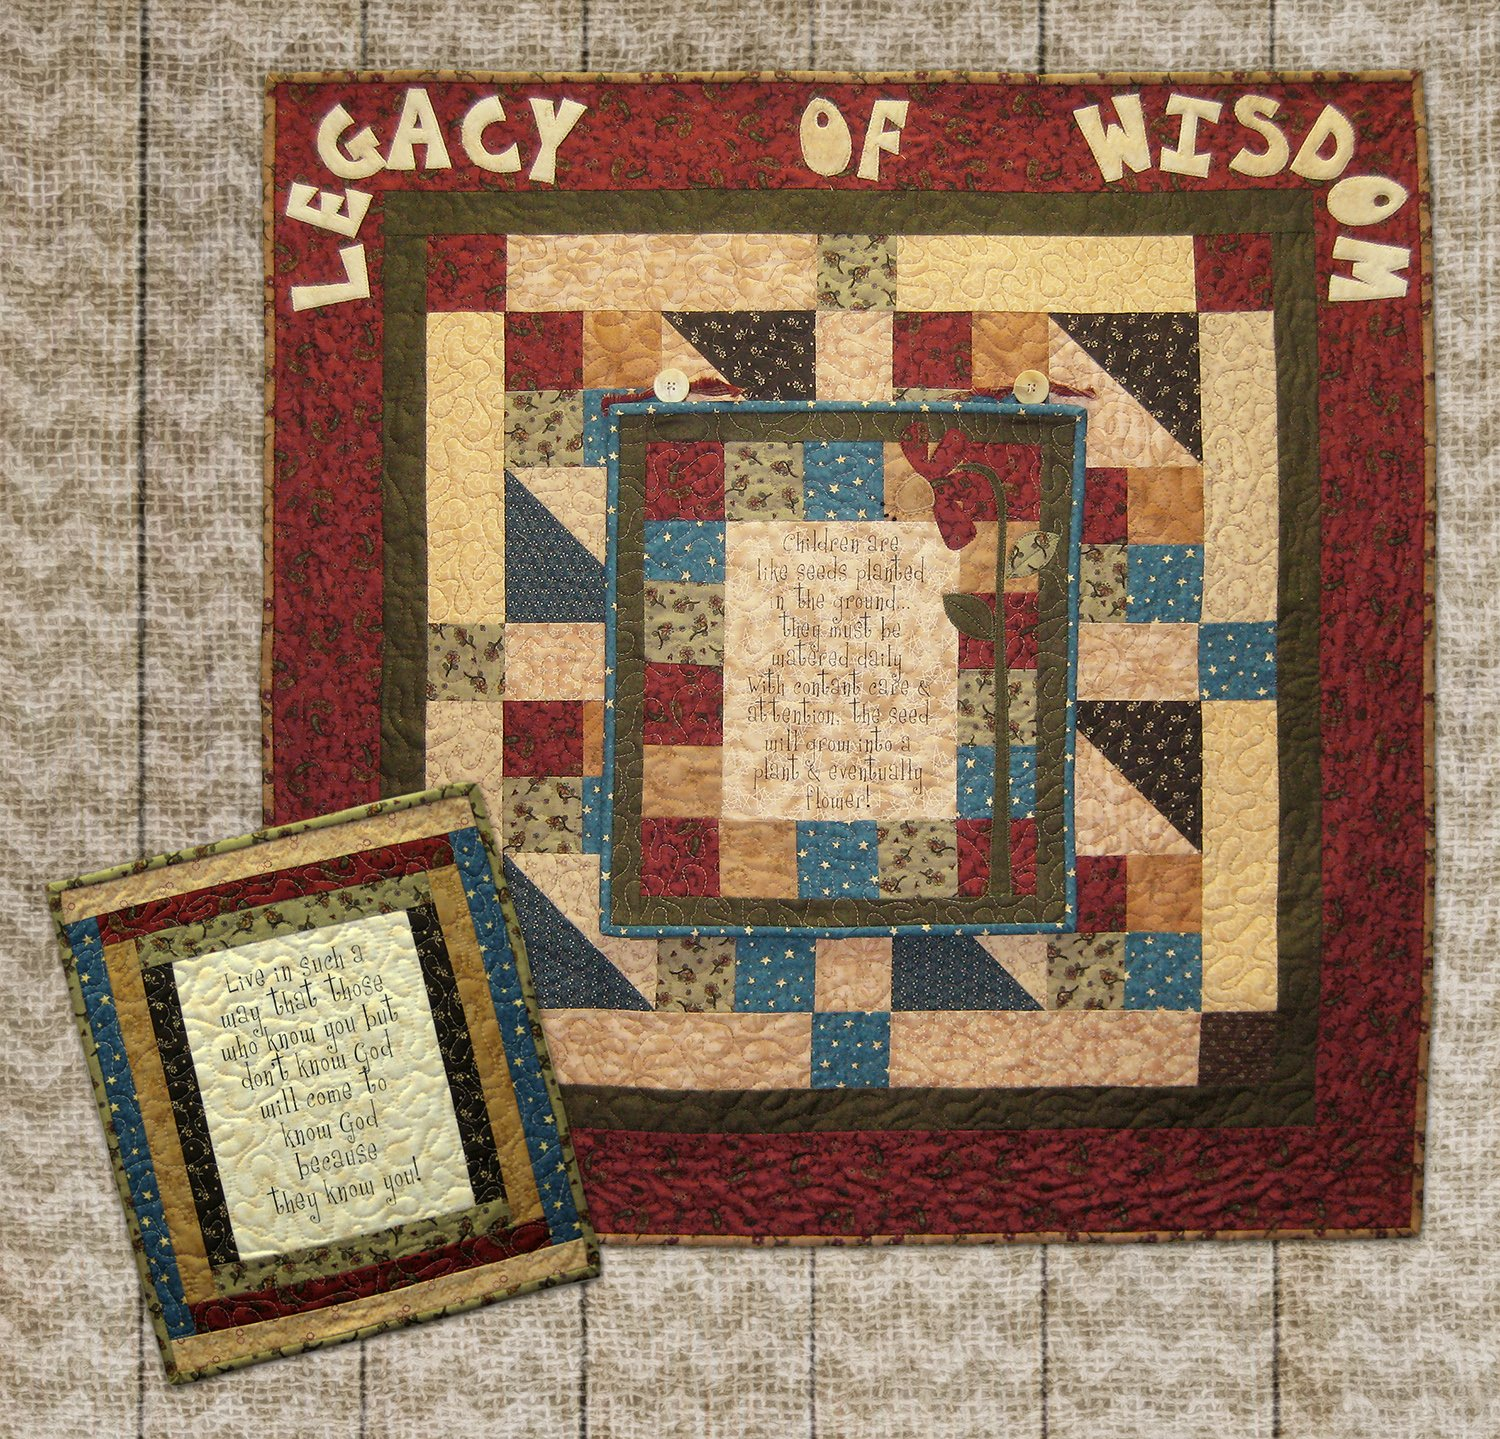 Legacy of Wisdom Base Quilt Kit